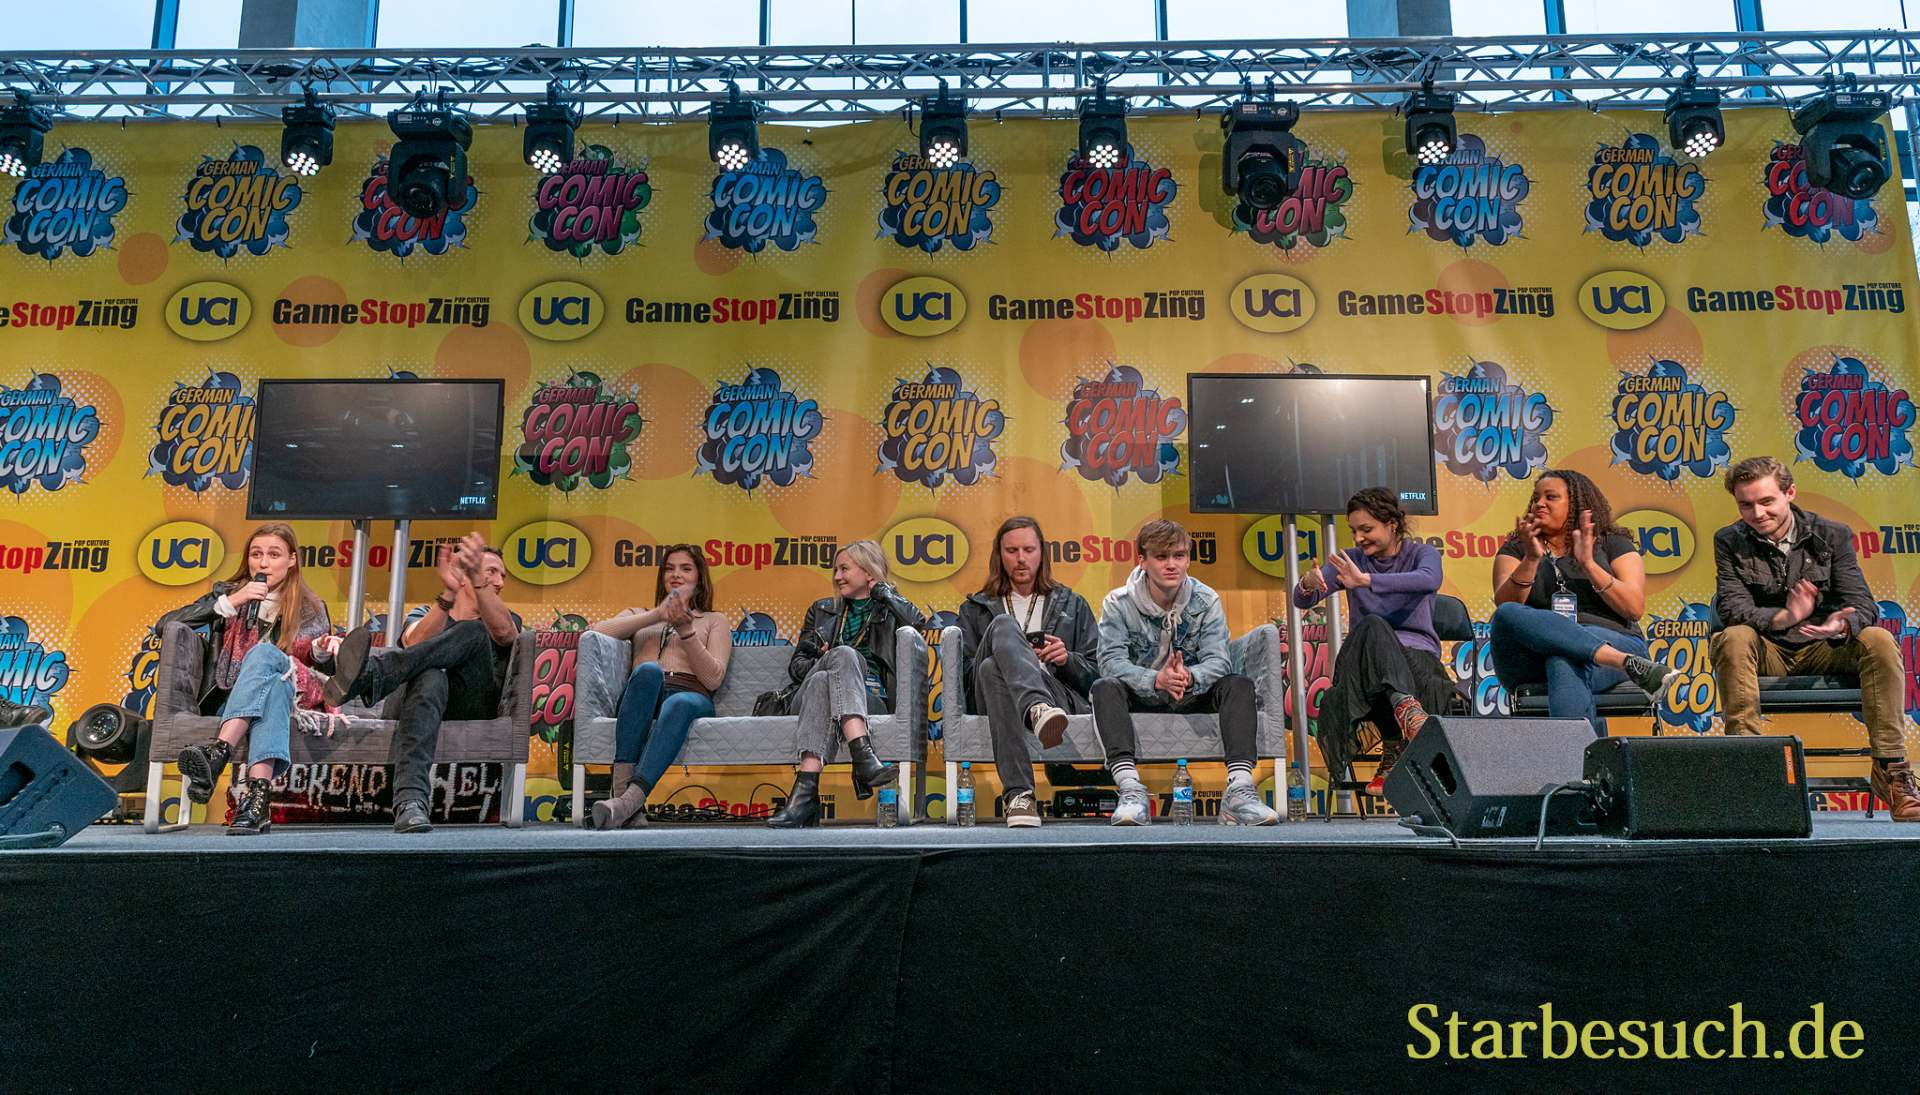 DORTMUND, GERMANY - December 7th 2019: Madison Lintz, Michael Traynor, Brighton Sharbino, Emily Kinney, Joshua Mikel, Matt Linz, Cassady McClincy, Nadine Marissa and Callan McAuliffe at German Comic Con Dortmund